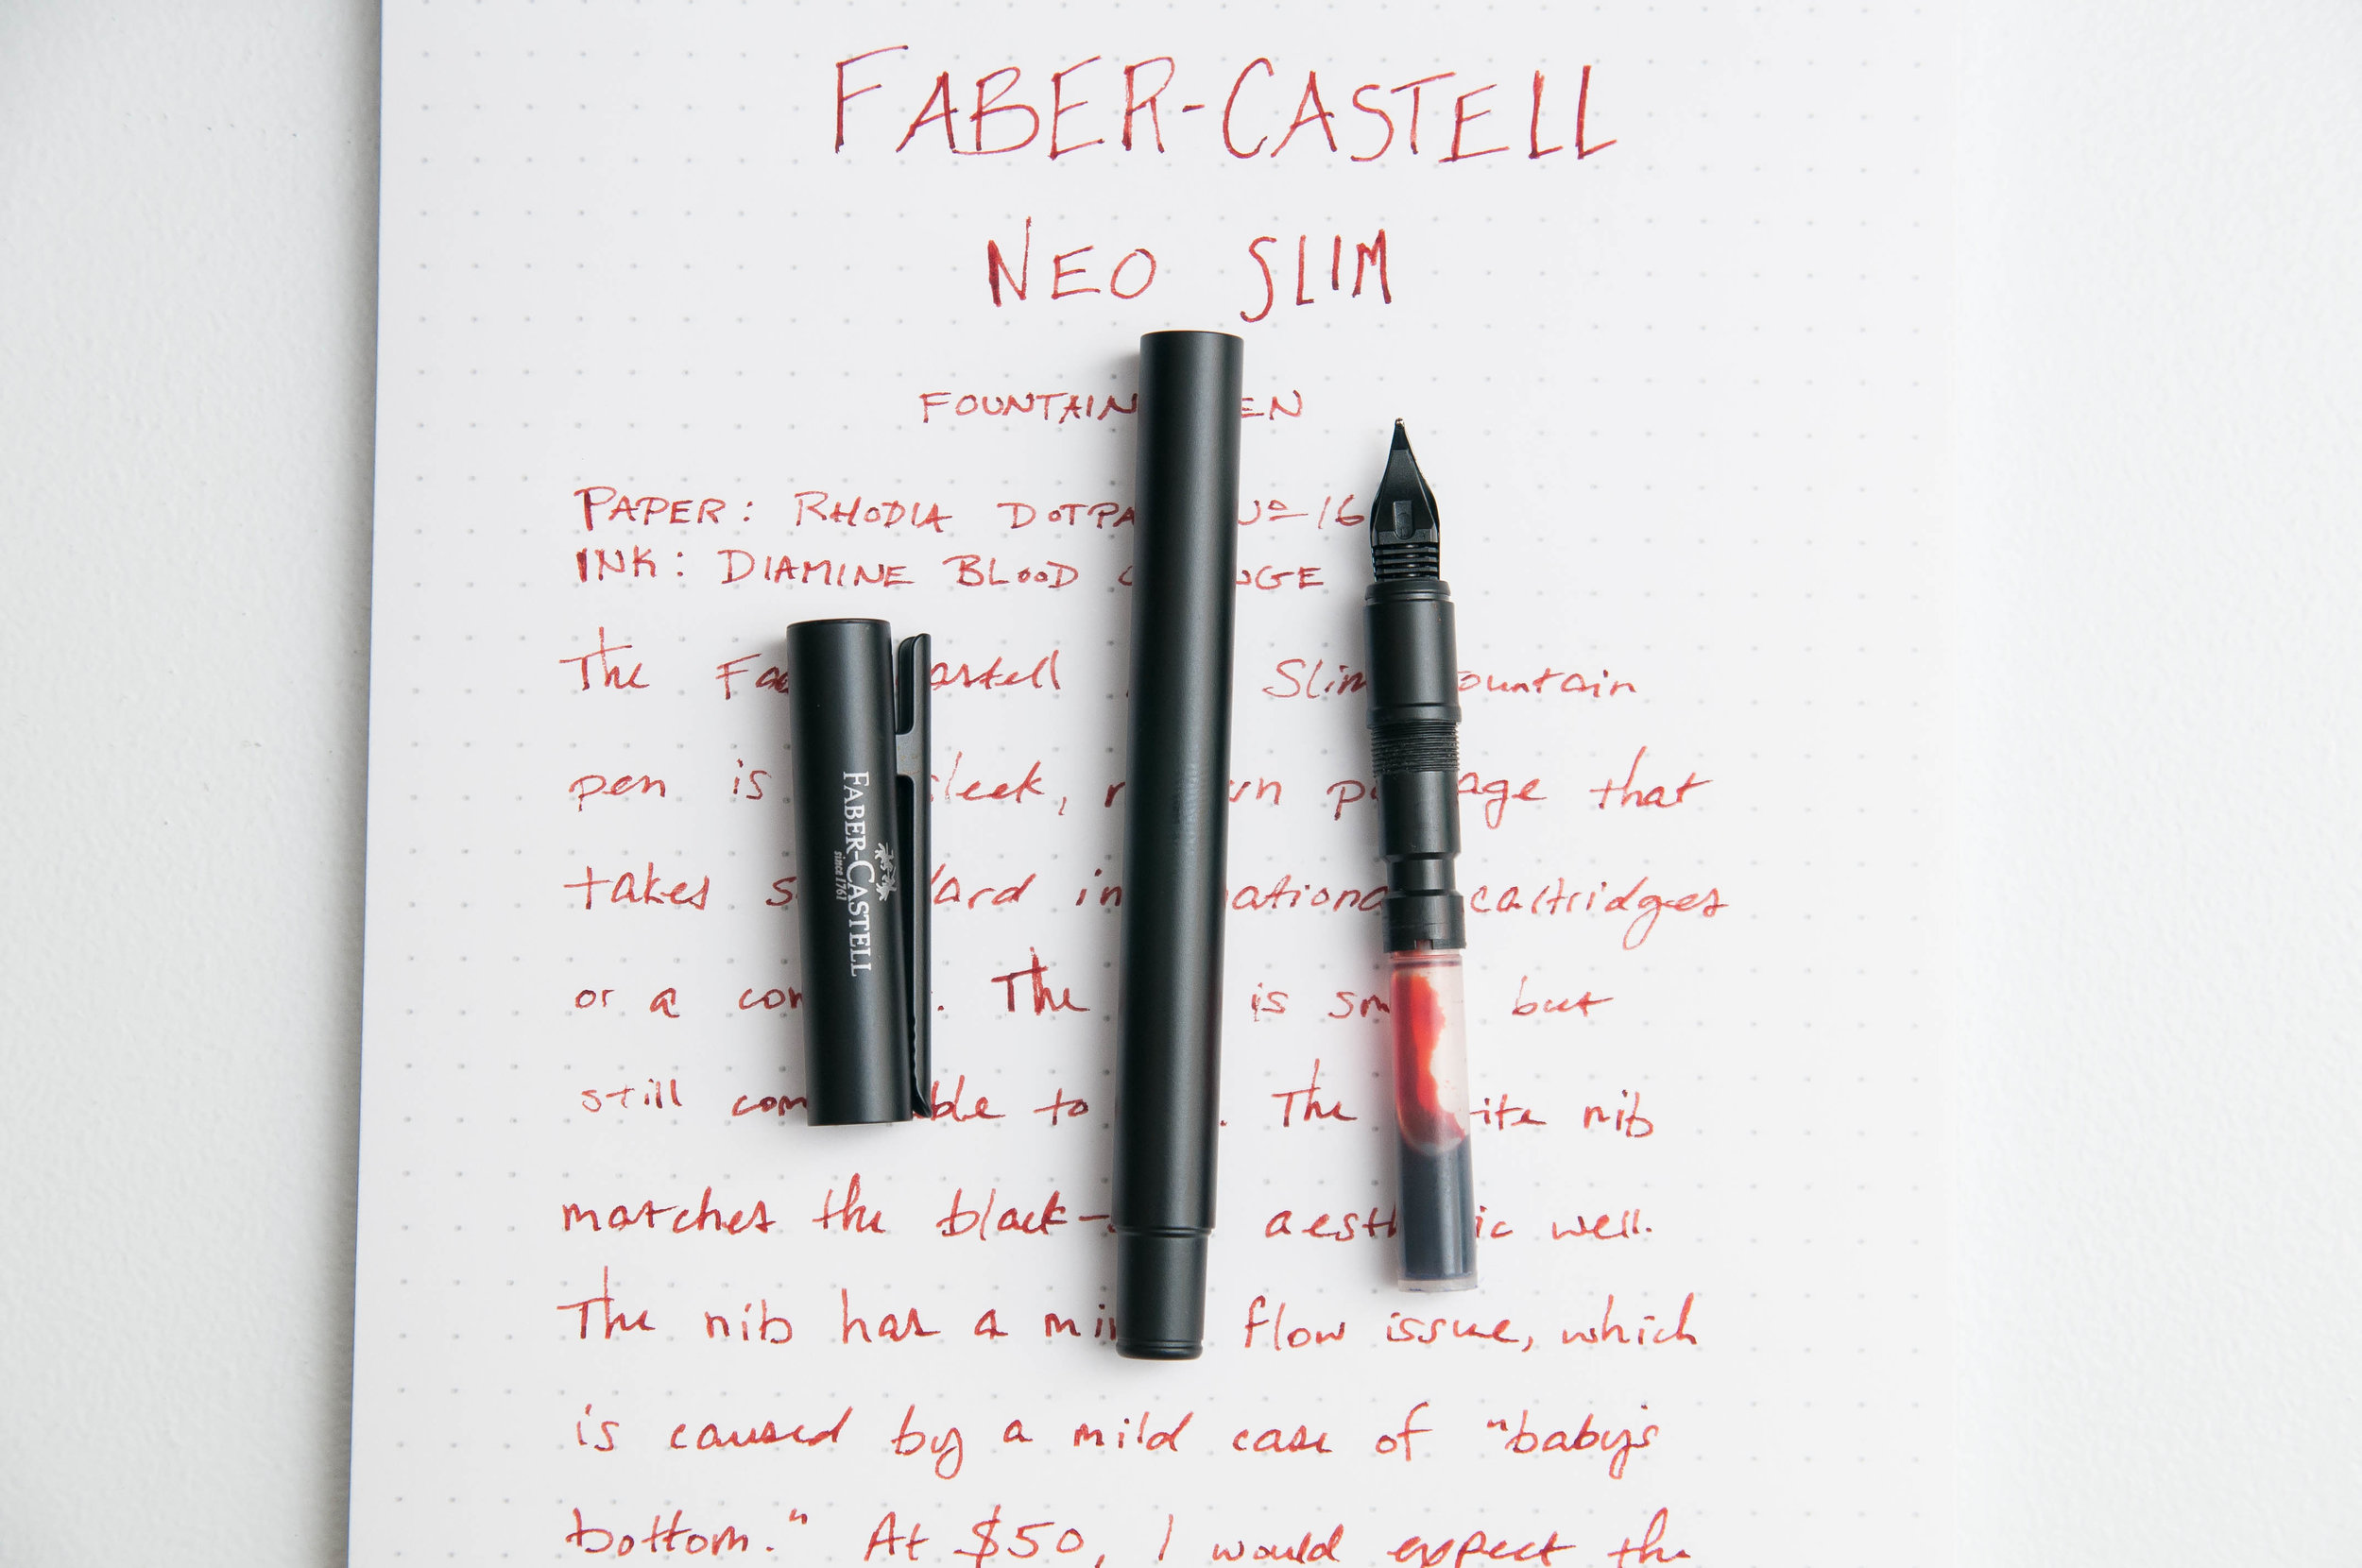 Faber-Castell NEO Slim